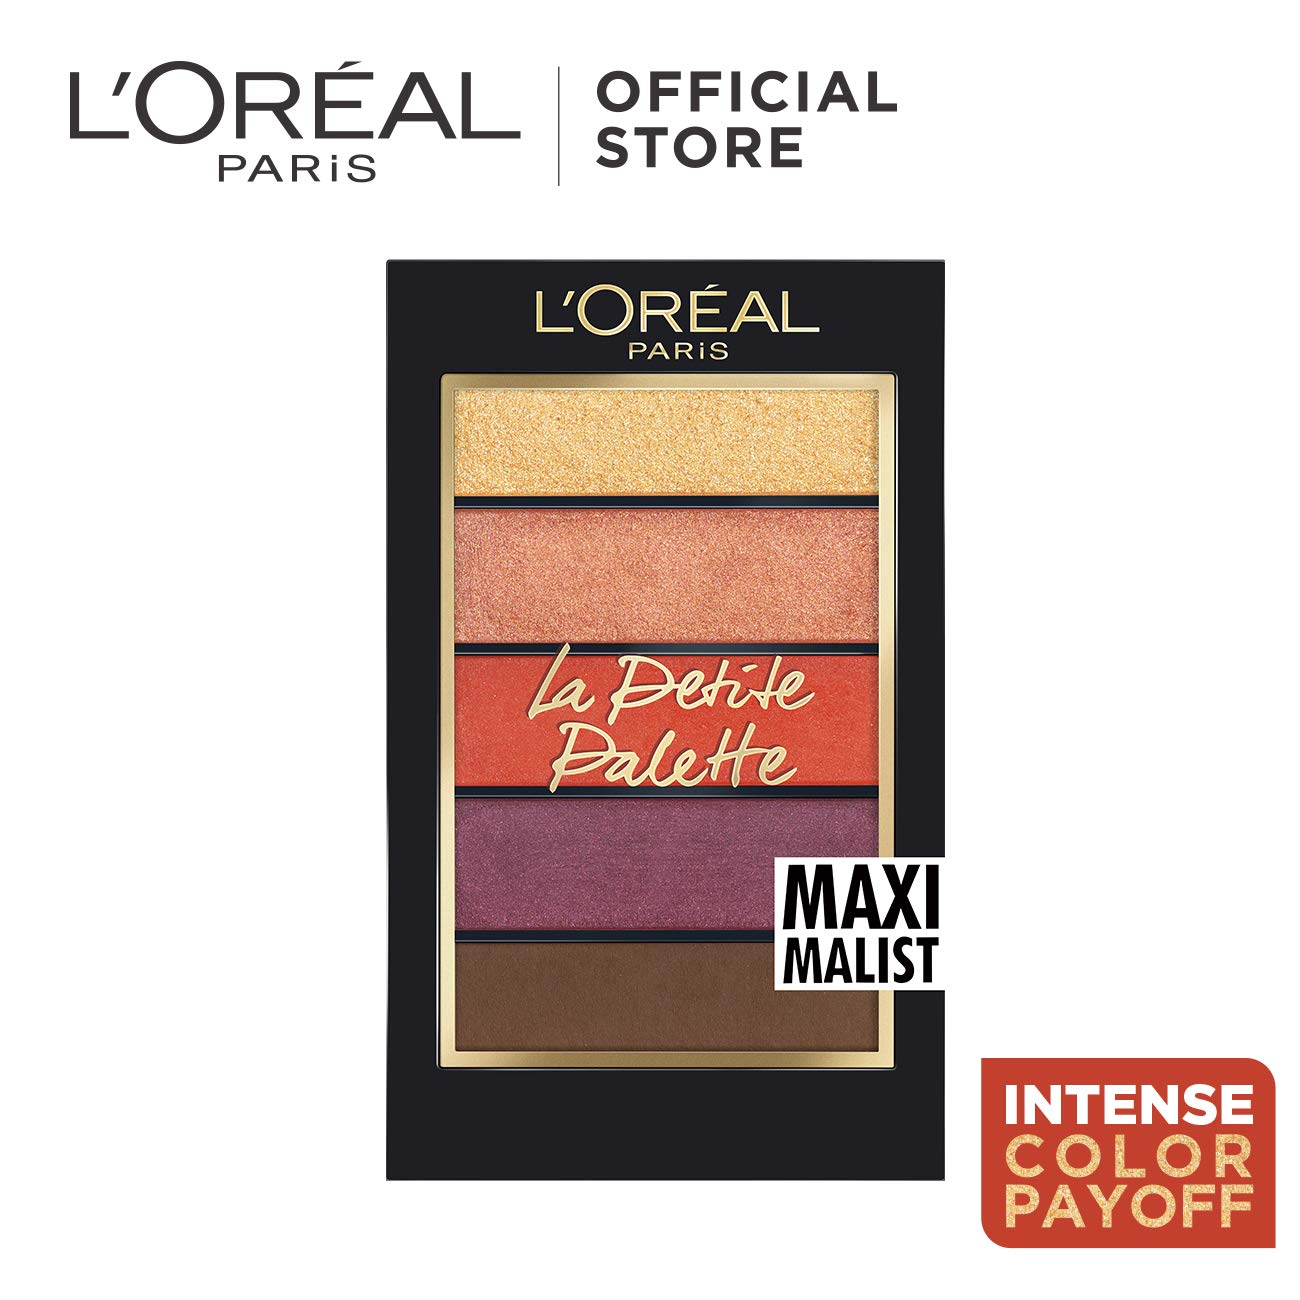 L'oreal Paris La Petite Eyeshadow Palette, Maximalist, Best Affordable Eyeshadow Palettes